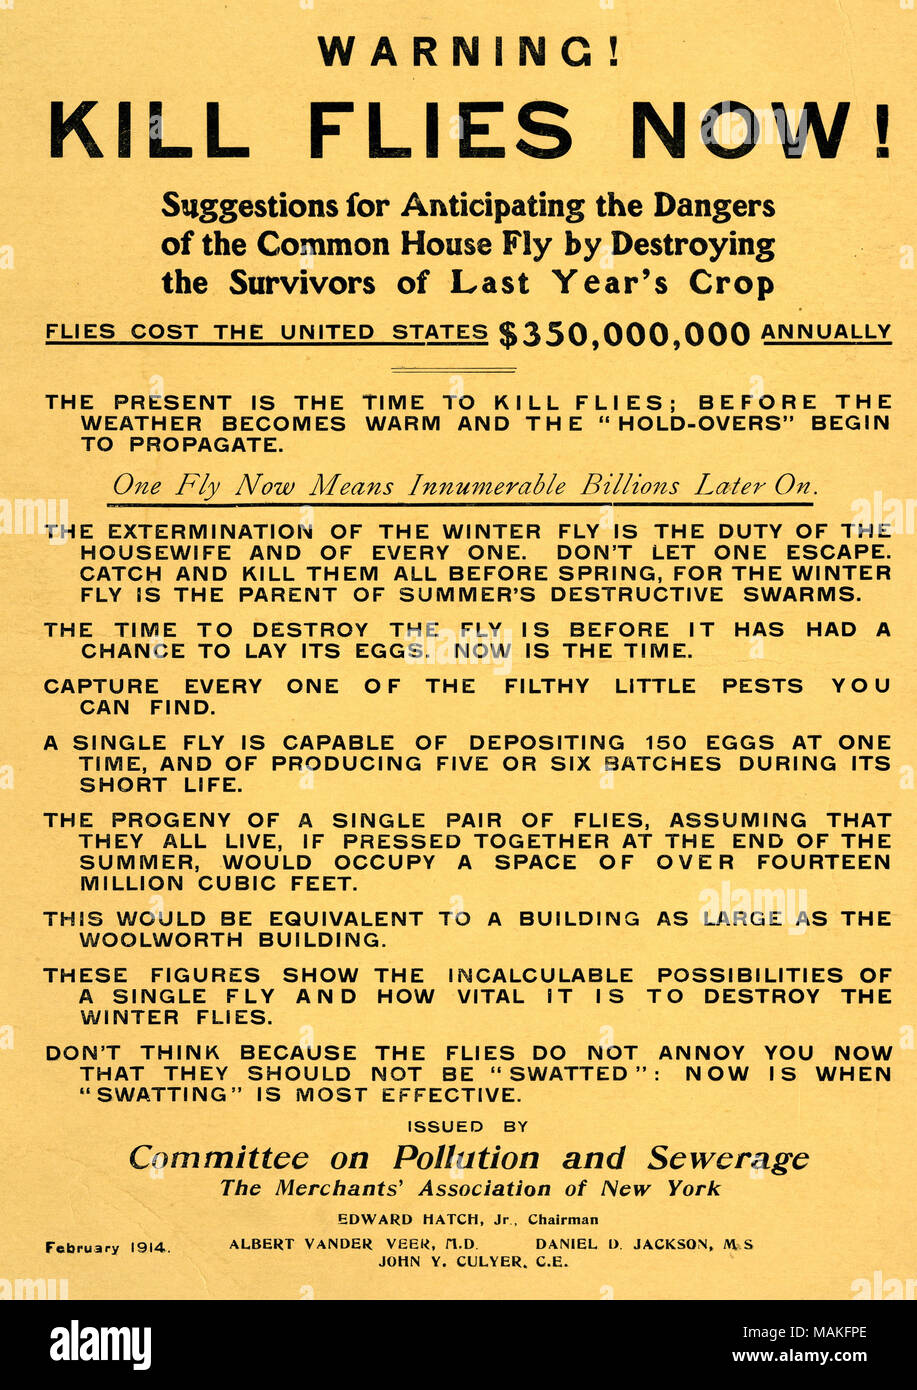 """Circular titled """"Warning! Kill Flies Now! Suggestions for Anticipating the Dangers of the Common House Fly by Destroying the Survivors of Last Year's Crop."""" Issued by the Merchants' Association of New York's Committee on Pollution and Sewerage. 1914 Feb. Circulars Collection, Missouri History Museum Archives, St. Louis. - Stock Image"""